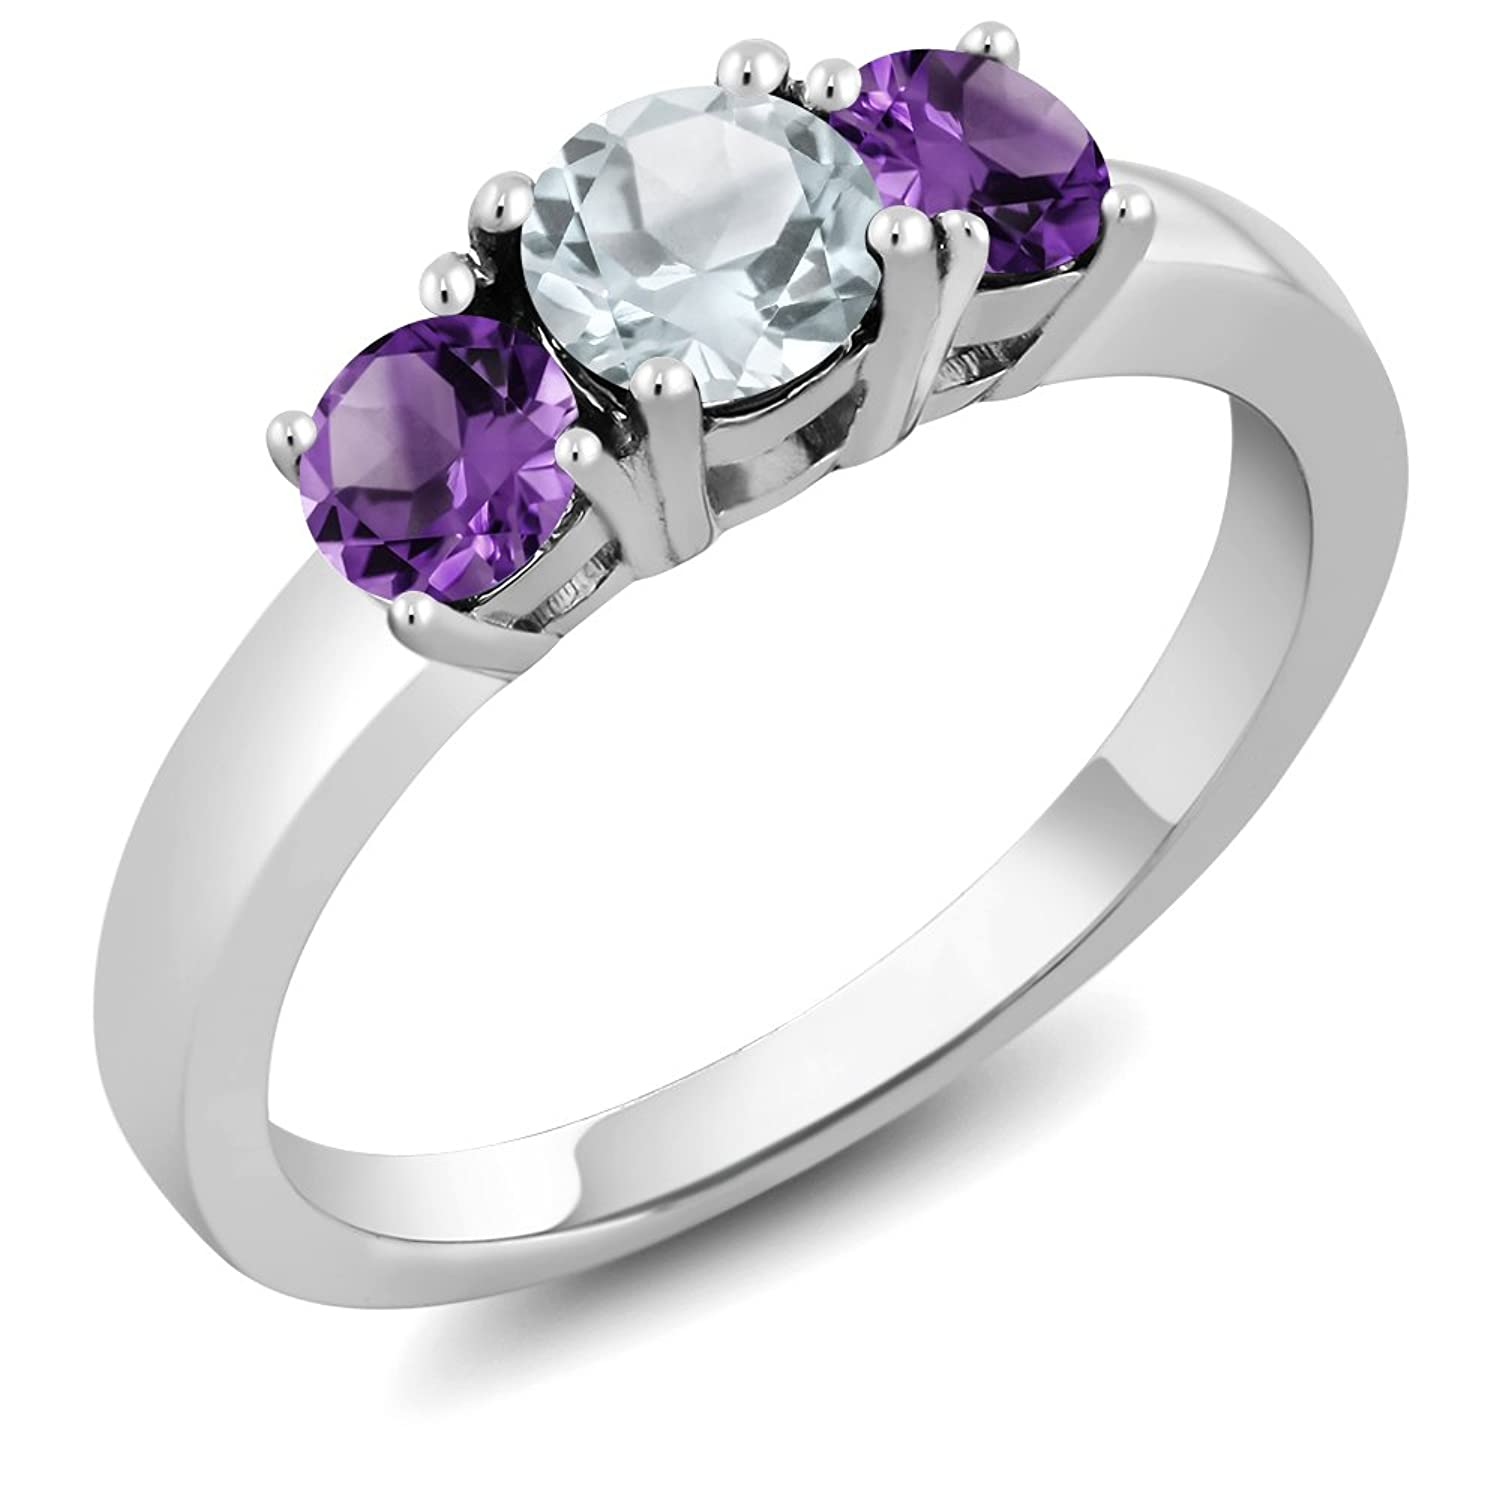 0.95 Ct Round Sky Blue Aquamarine Purple Amethyst 925 Sterling Silver 3-Stone Ring (Available in size 5, 6, 7, 8, 9)